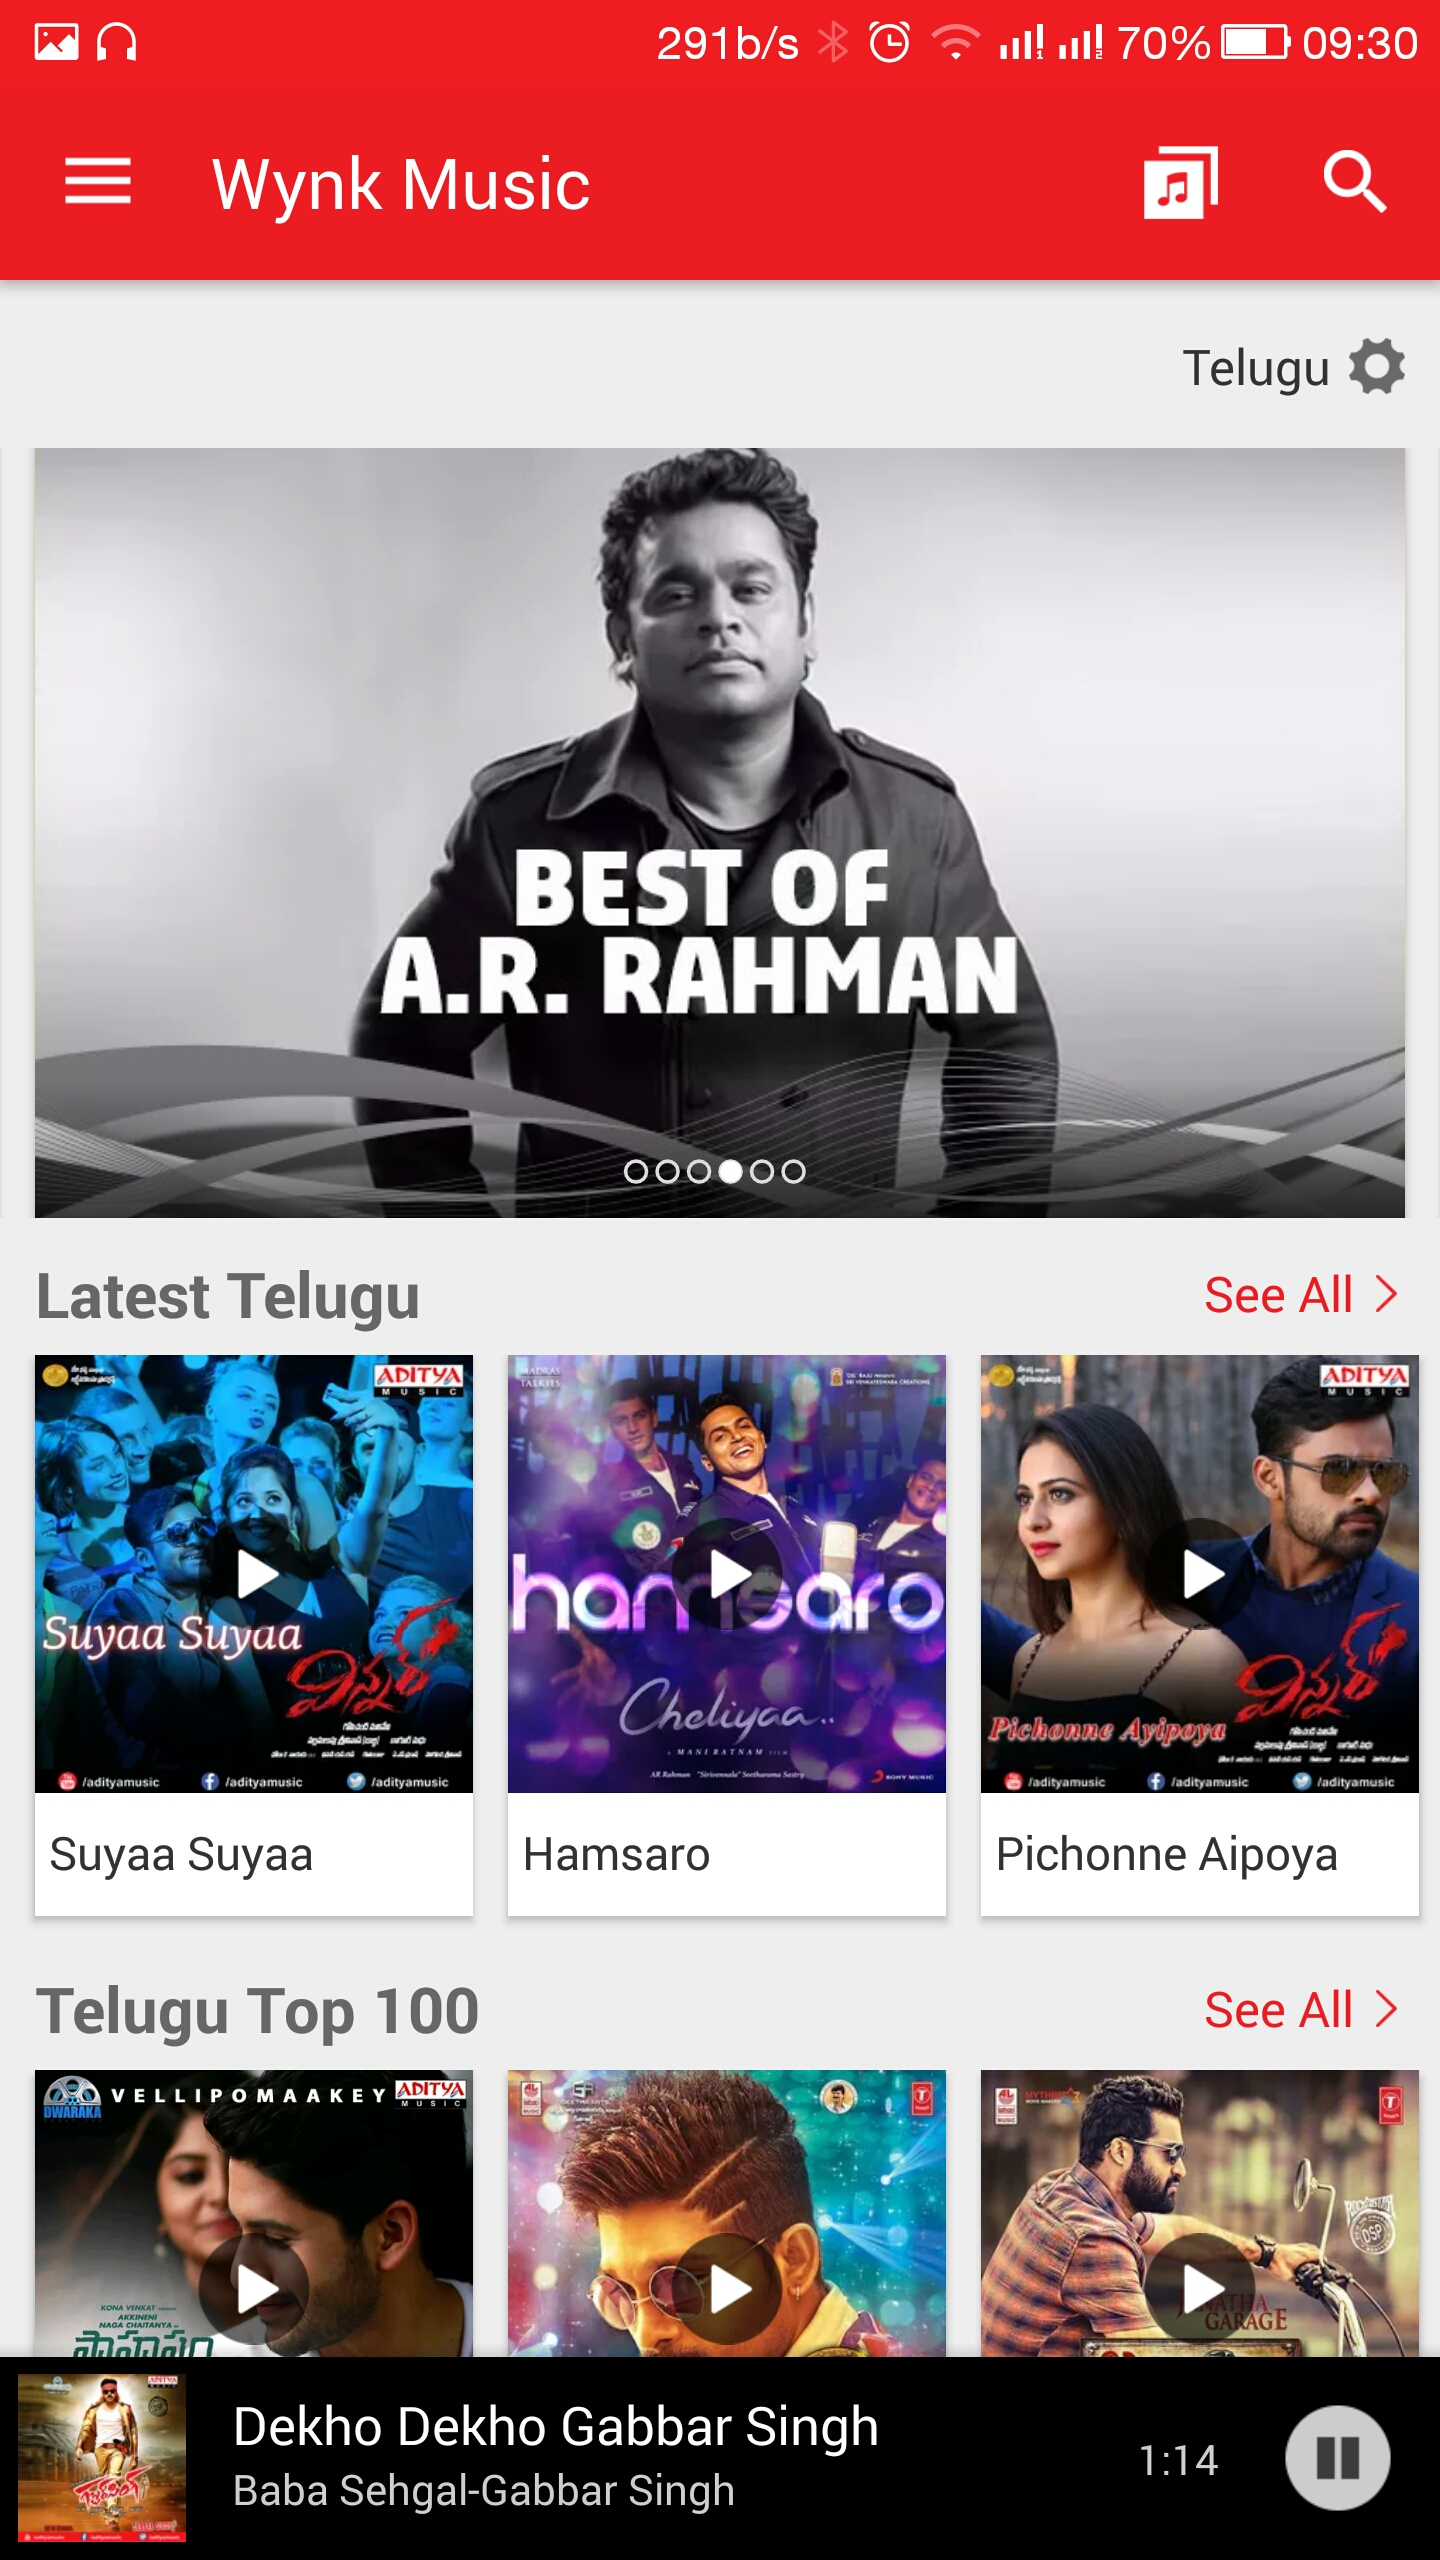 Image result for WYNK MUSIC APP